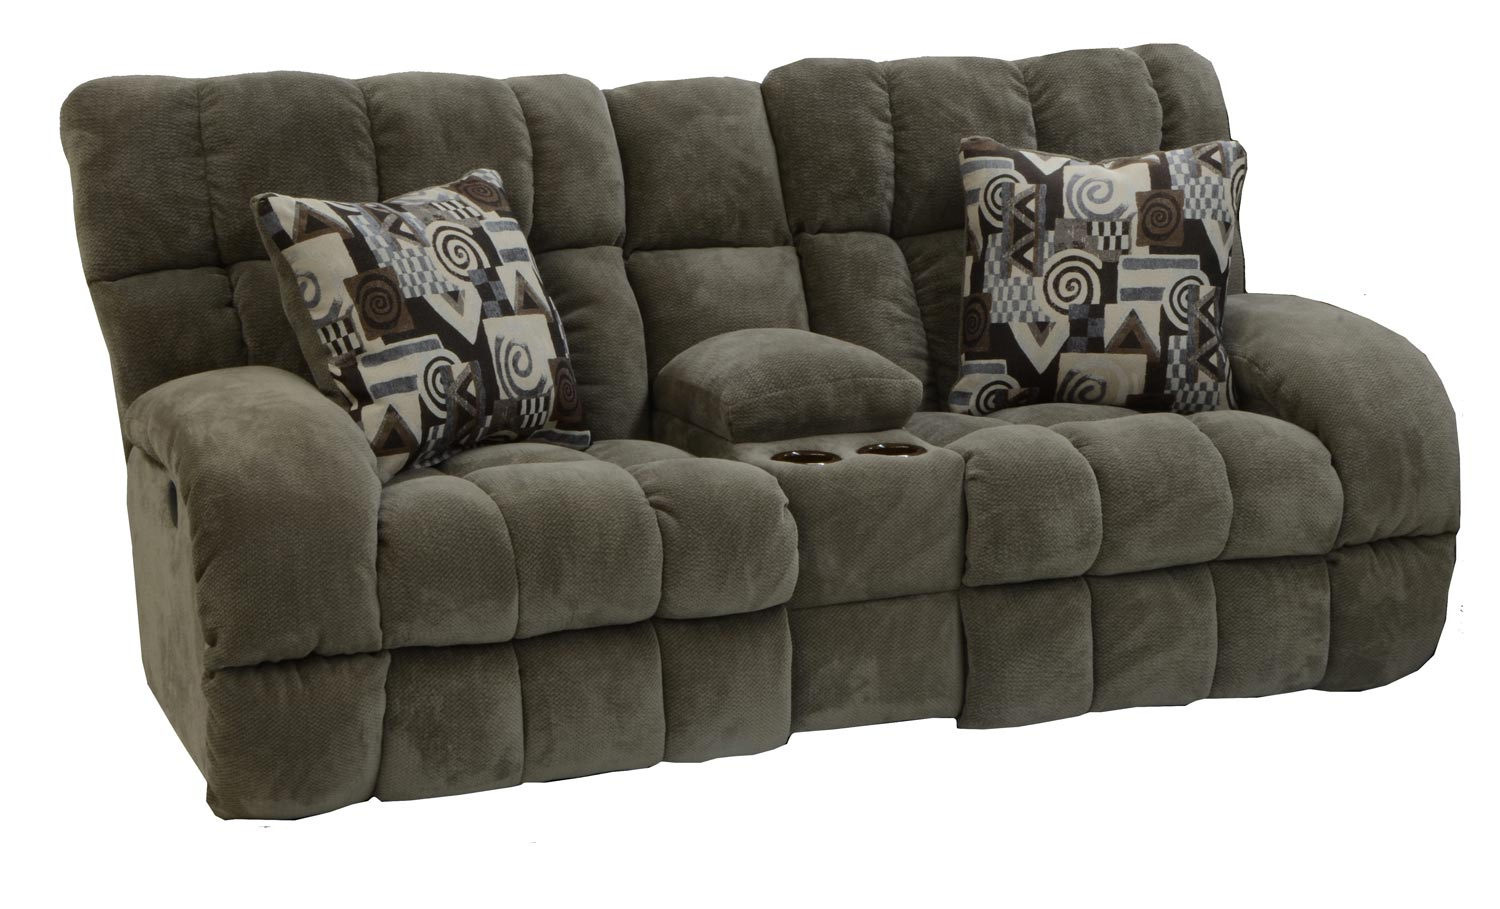 Catnapper Siesta Power Lay Flat Reclining Console Loveseat With Storage And Cupholders Porcini